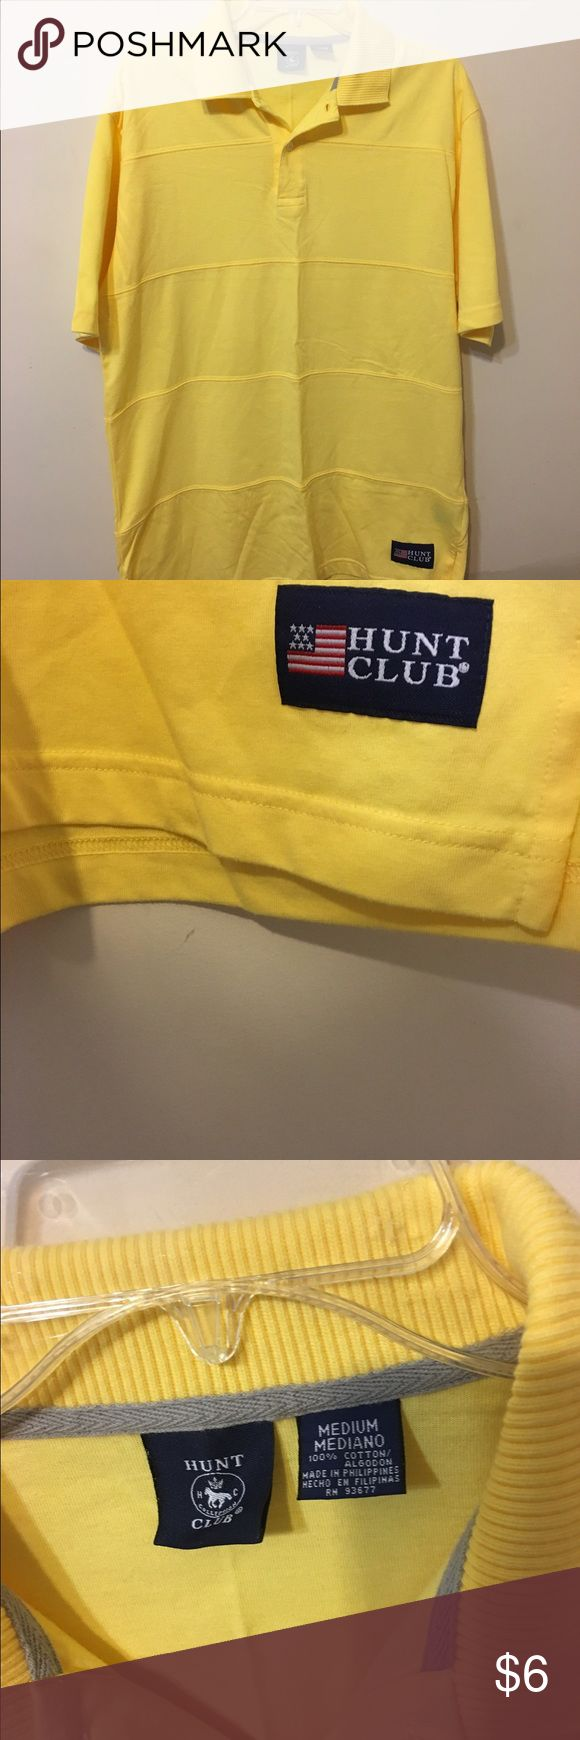 Hunt Club Polo....Size Medium Nice yellow, polo in great condition. 100% cotton. Hunt Club Shirts Polos